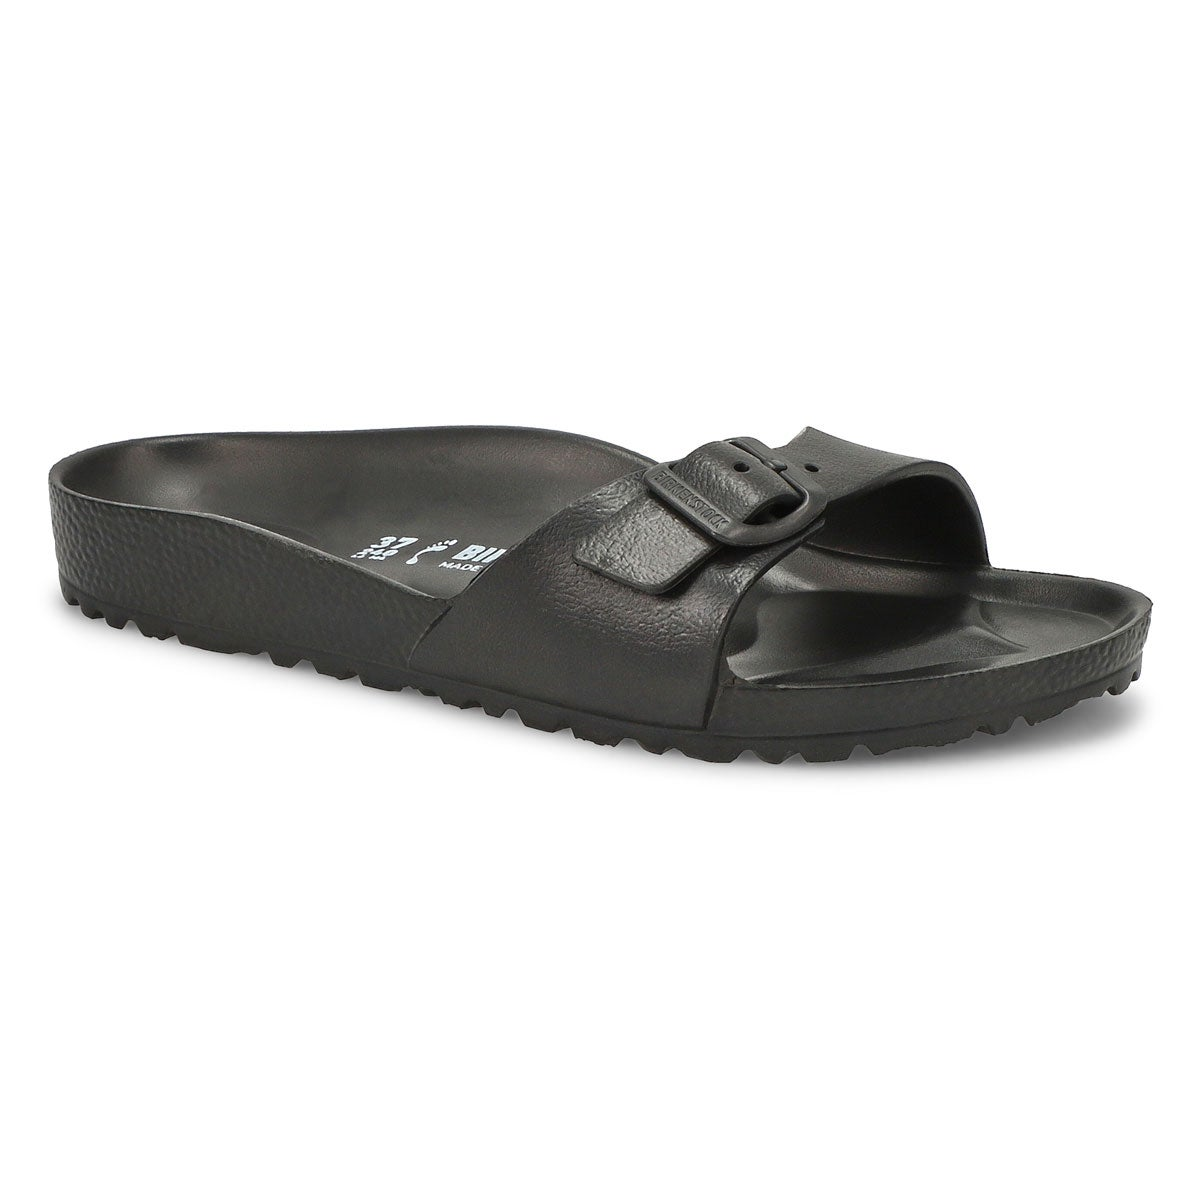 Women's MADRID black slide sandals - Narrow